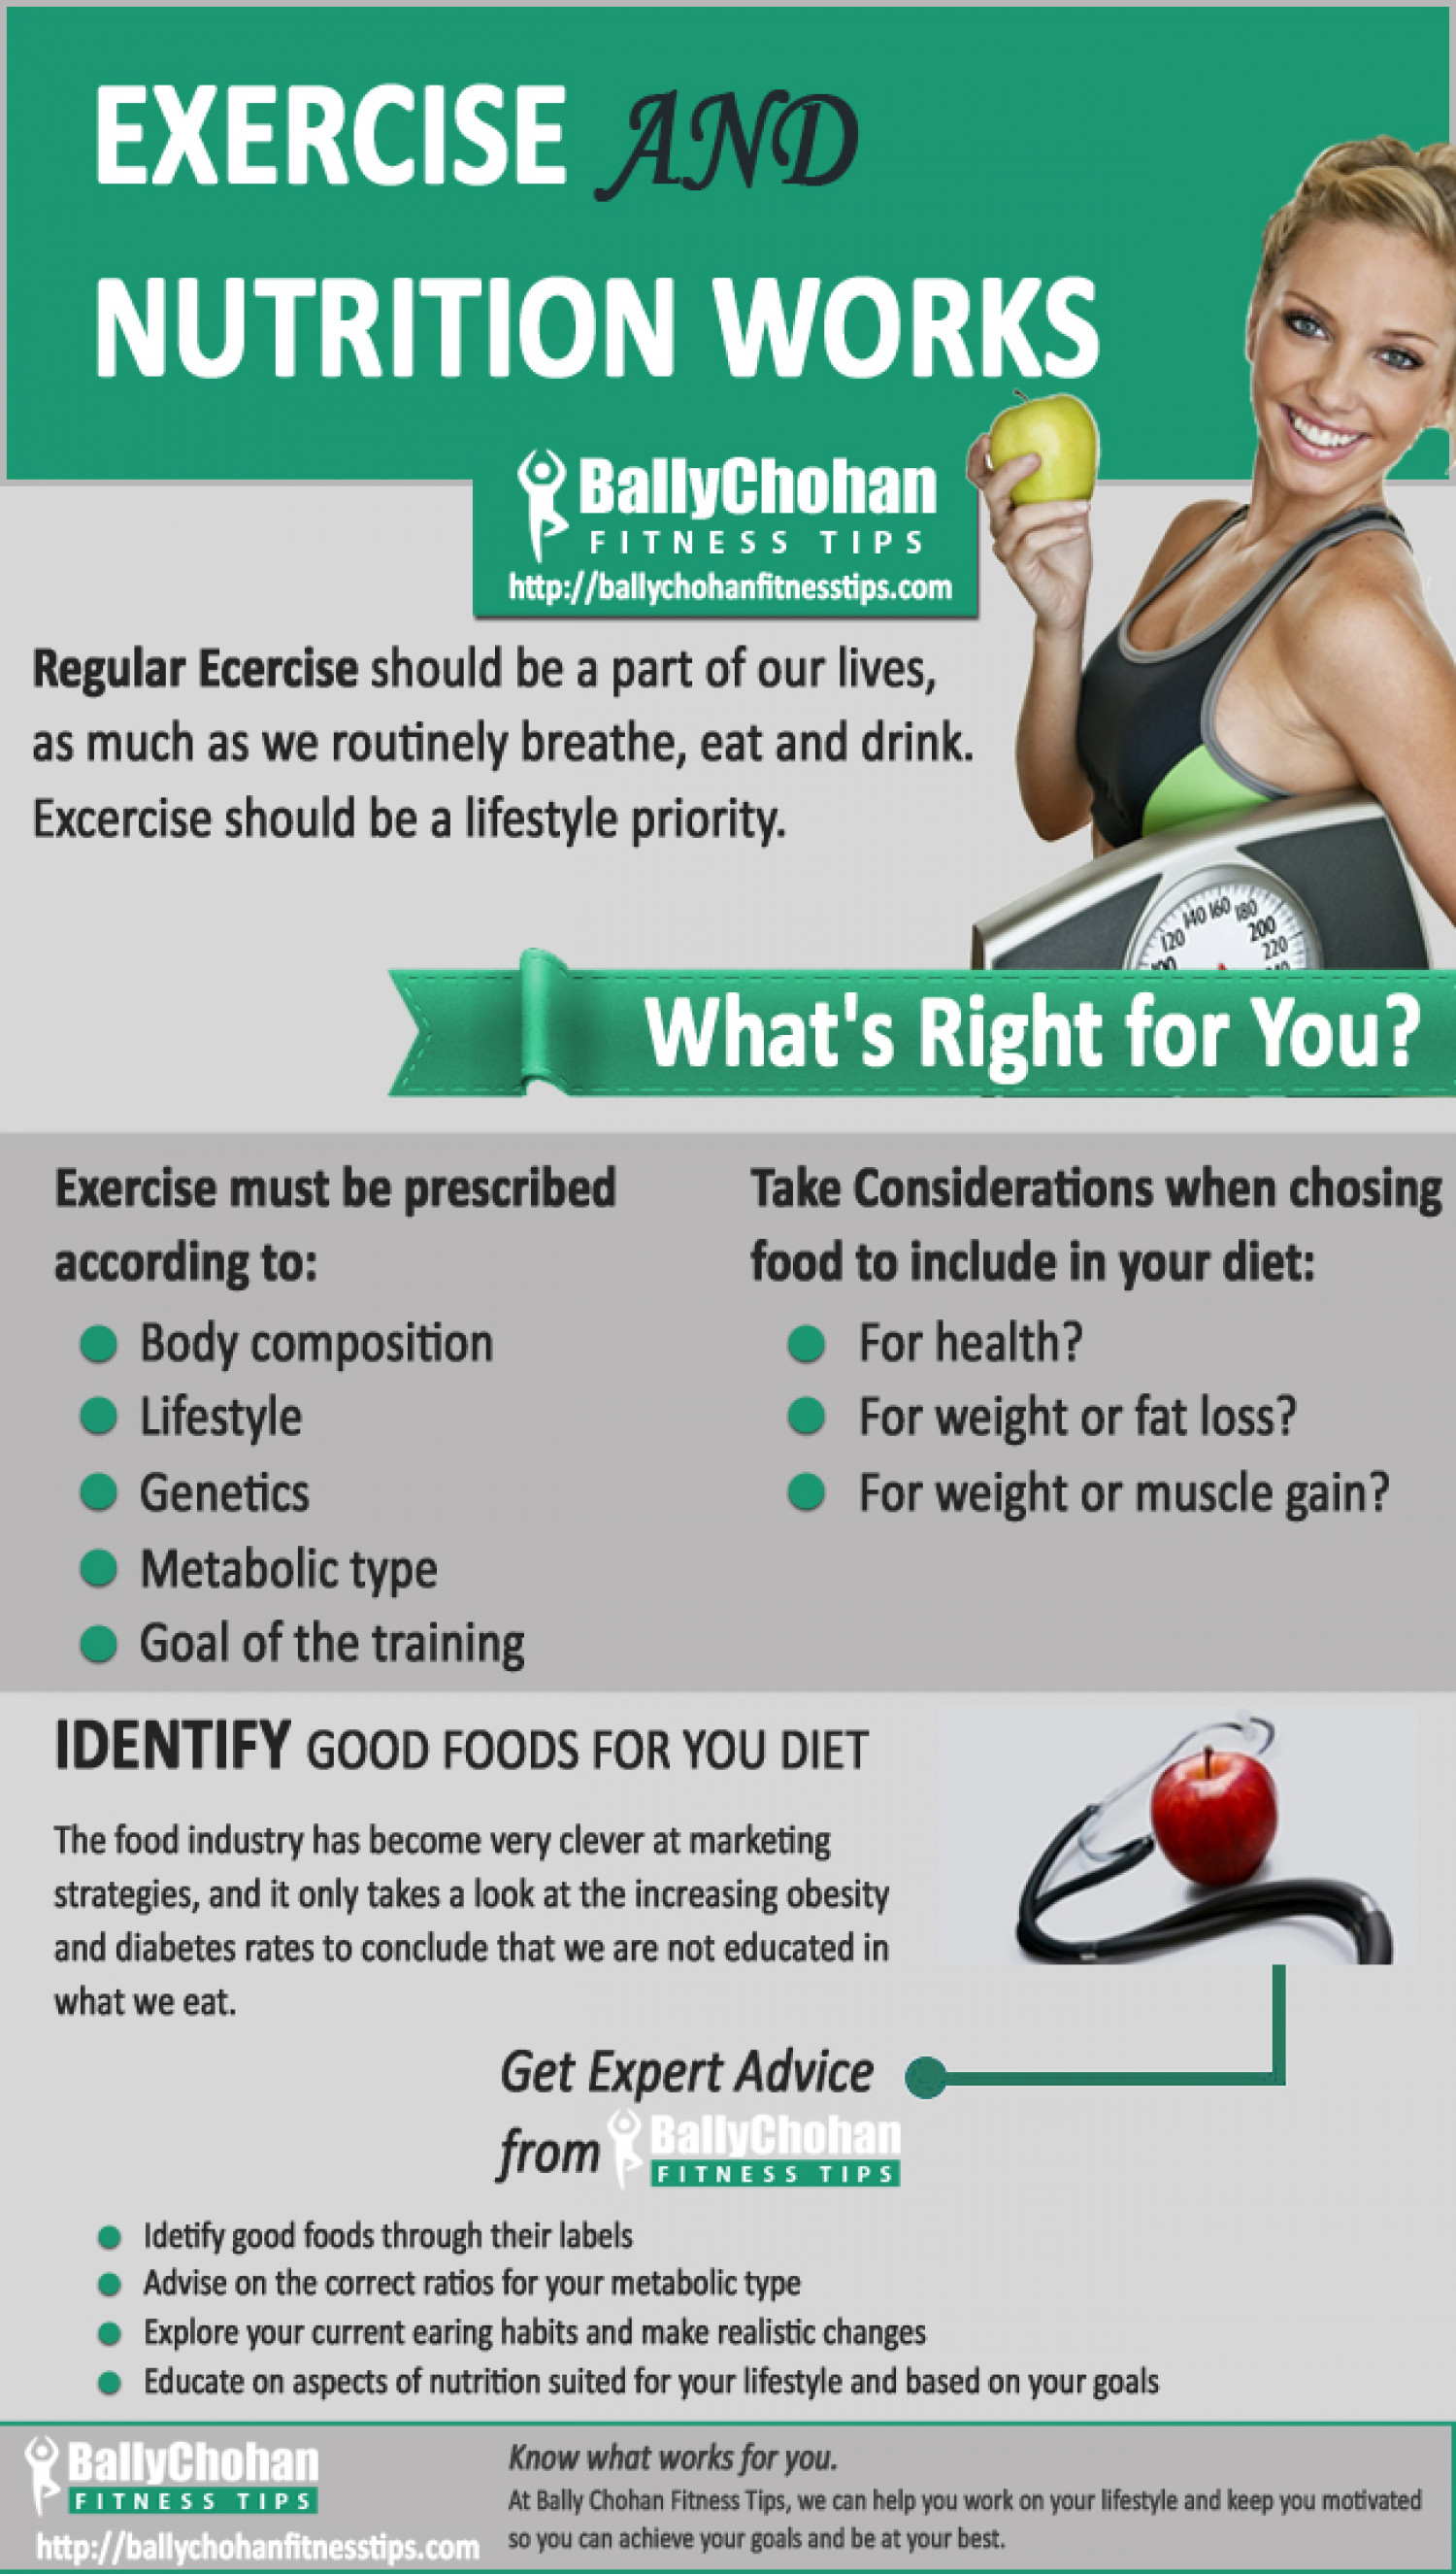 Bally Chohan Fitness Tips - Exercise and Nutrition Works Infographic